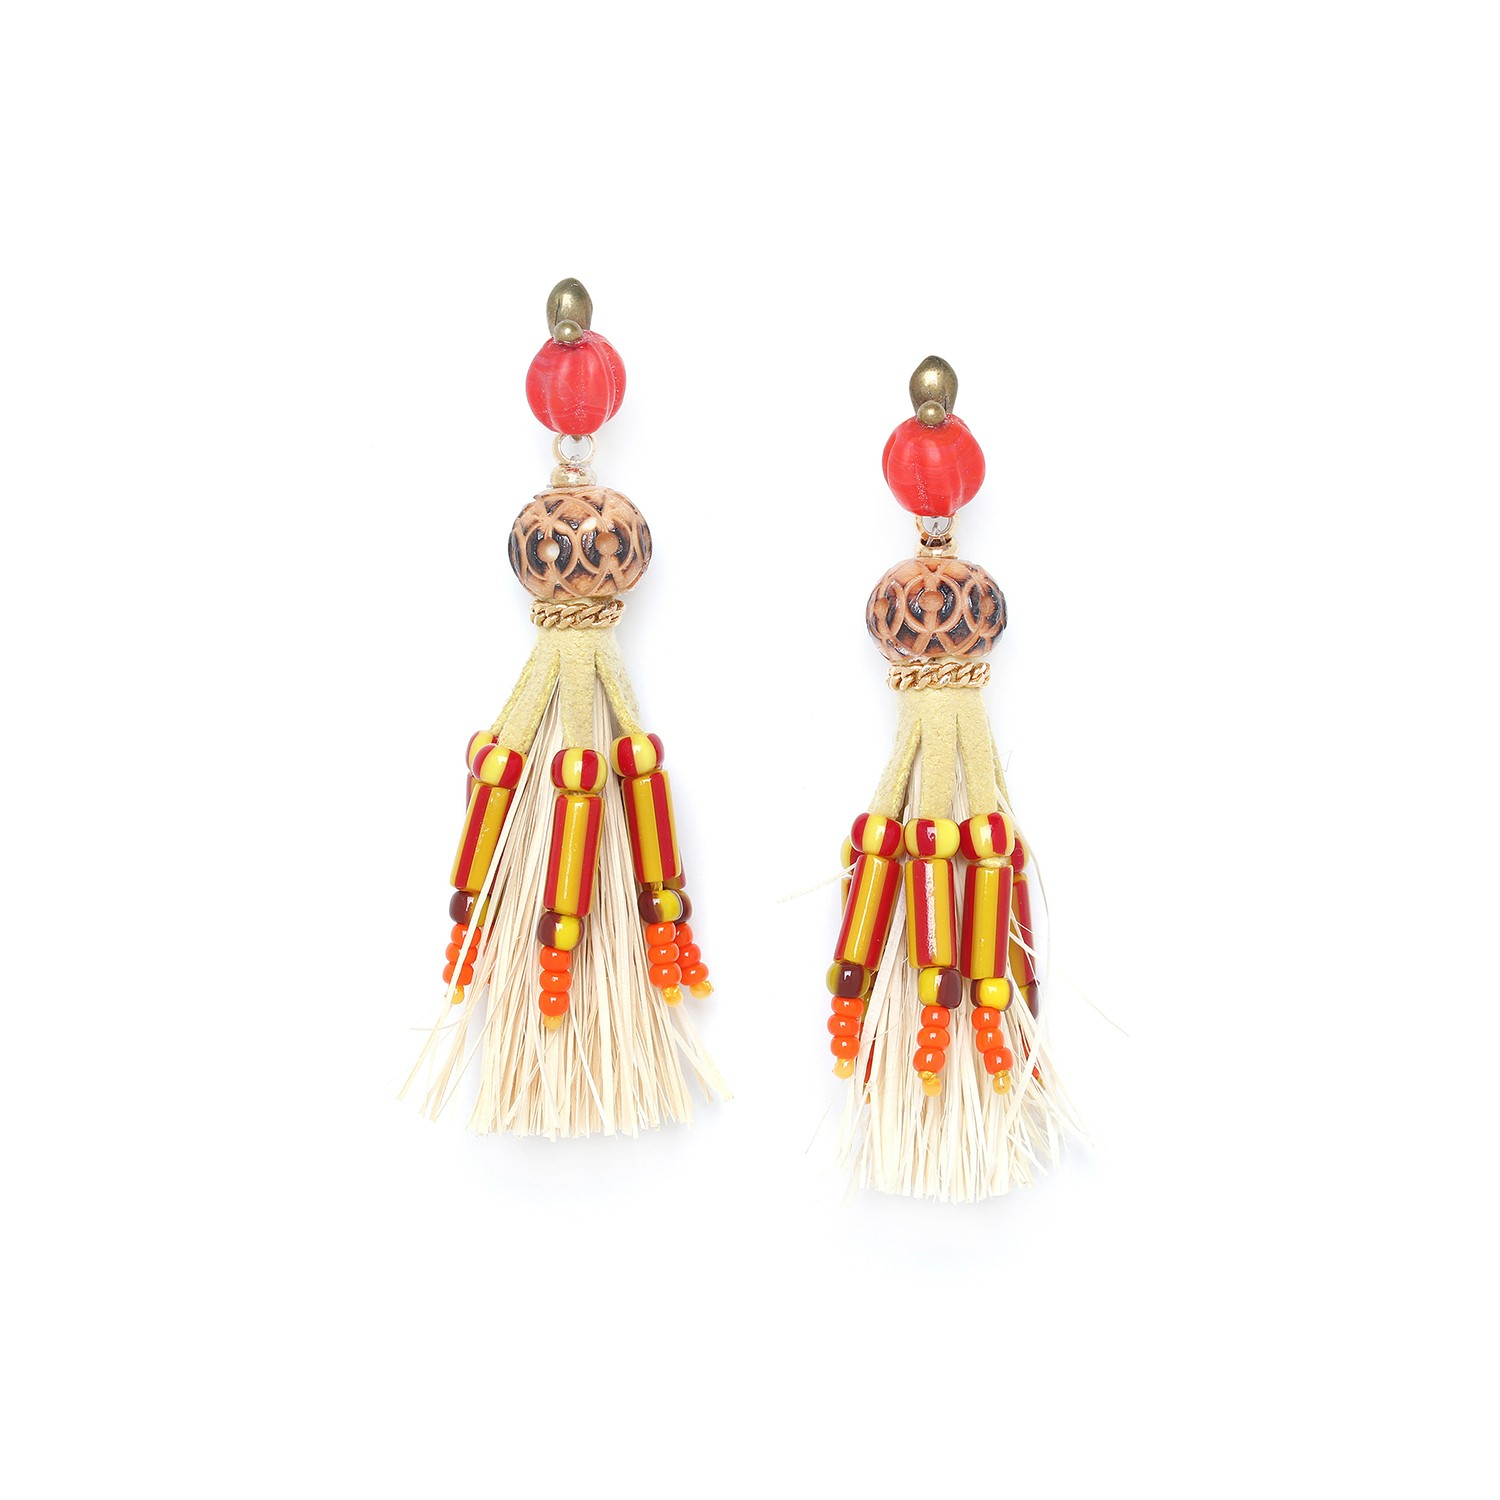 ULUWATU raphia BIG earrings